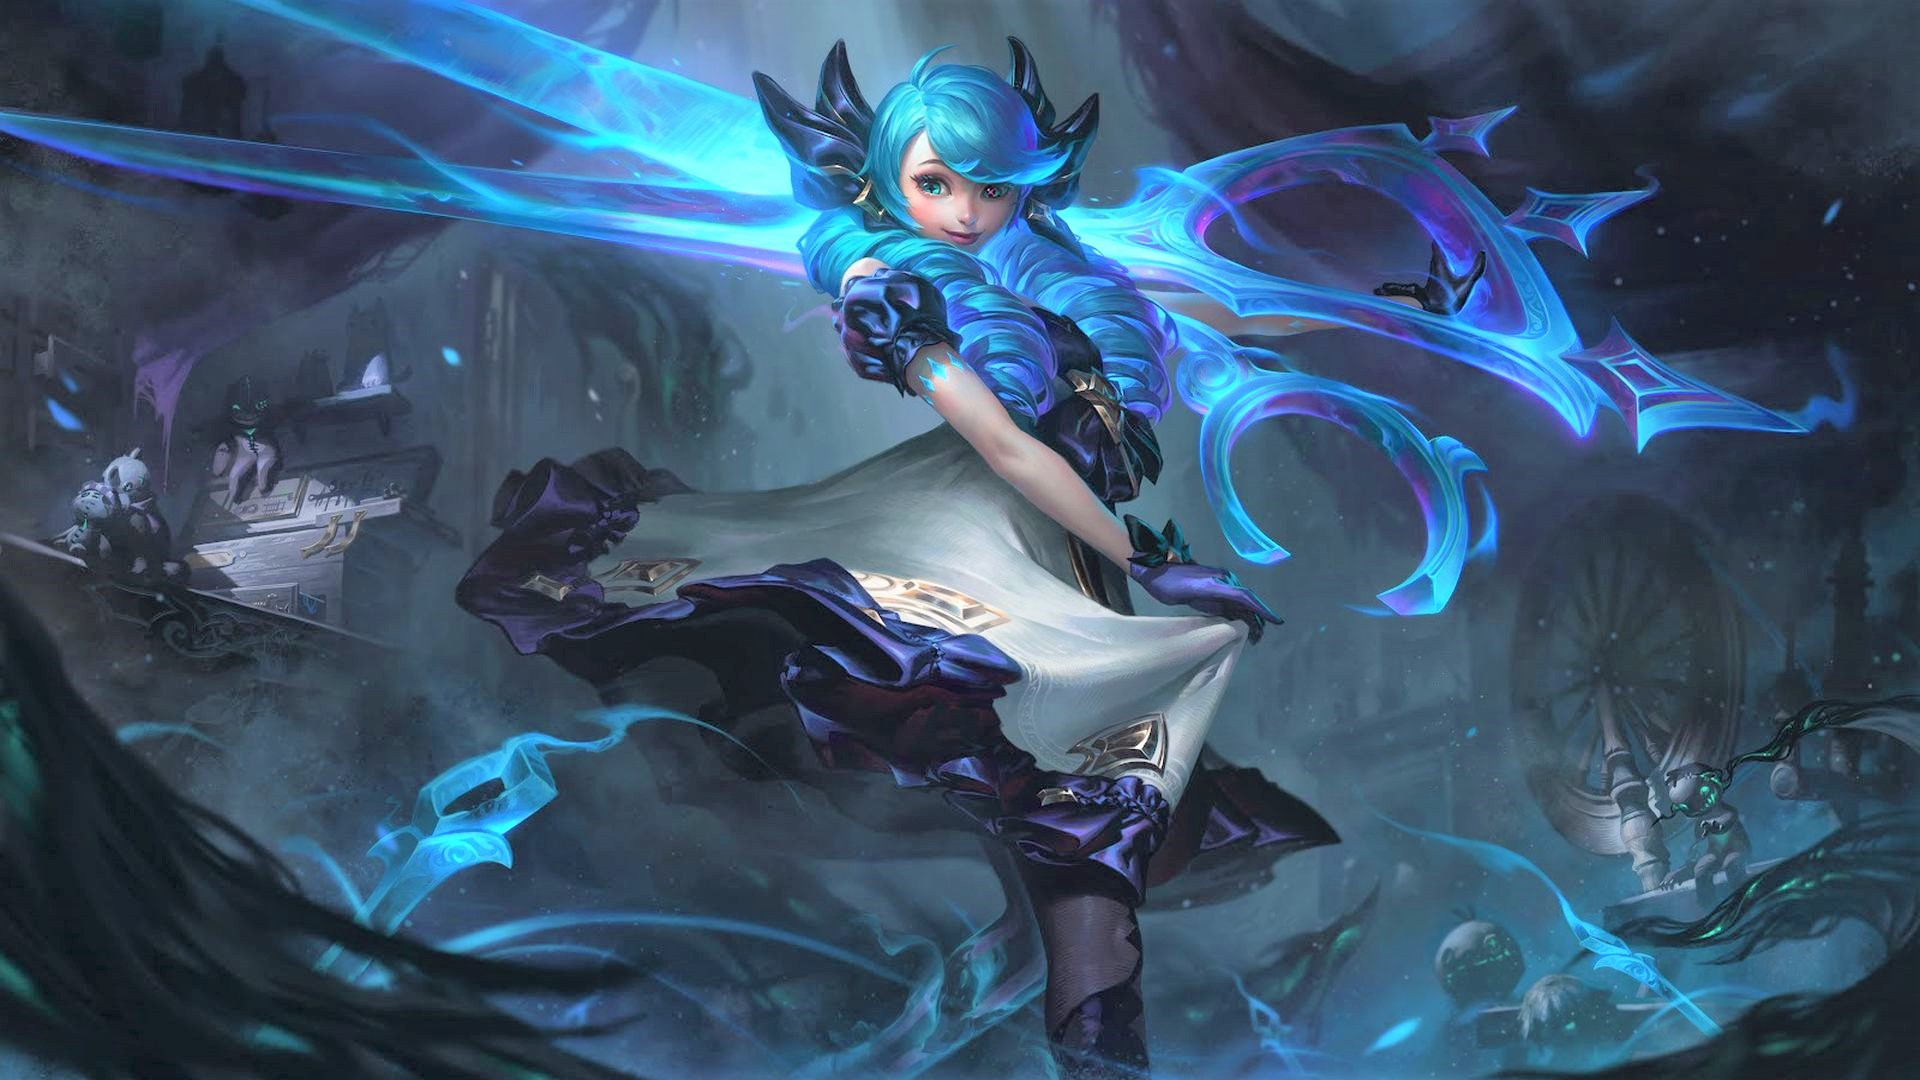 League of Legends patch 11.8 notes – New Champion Gwen, Dragonslayer, Blackfrost skins